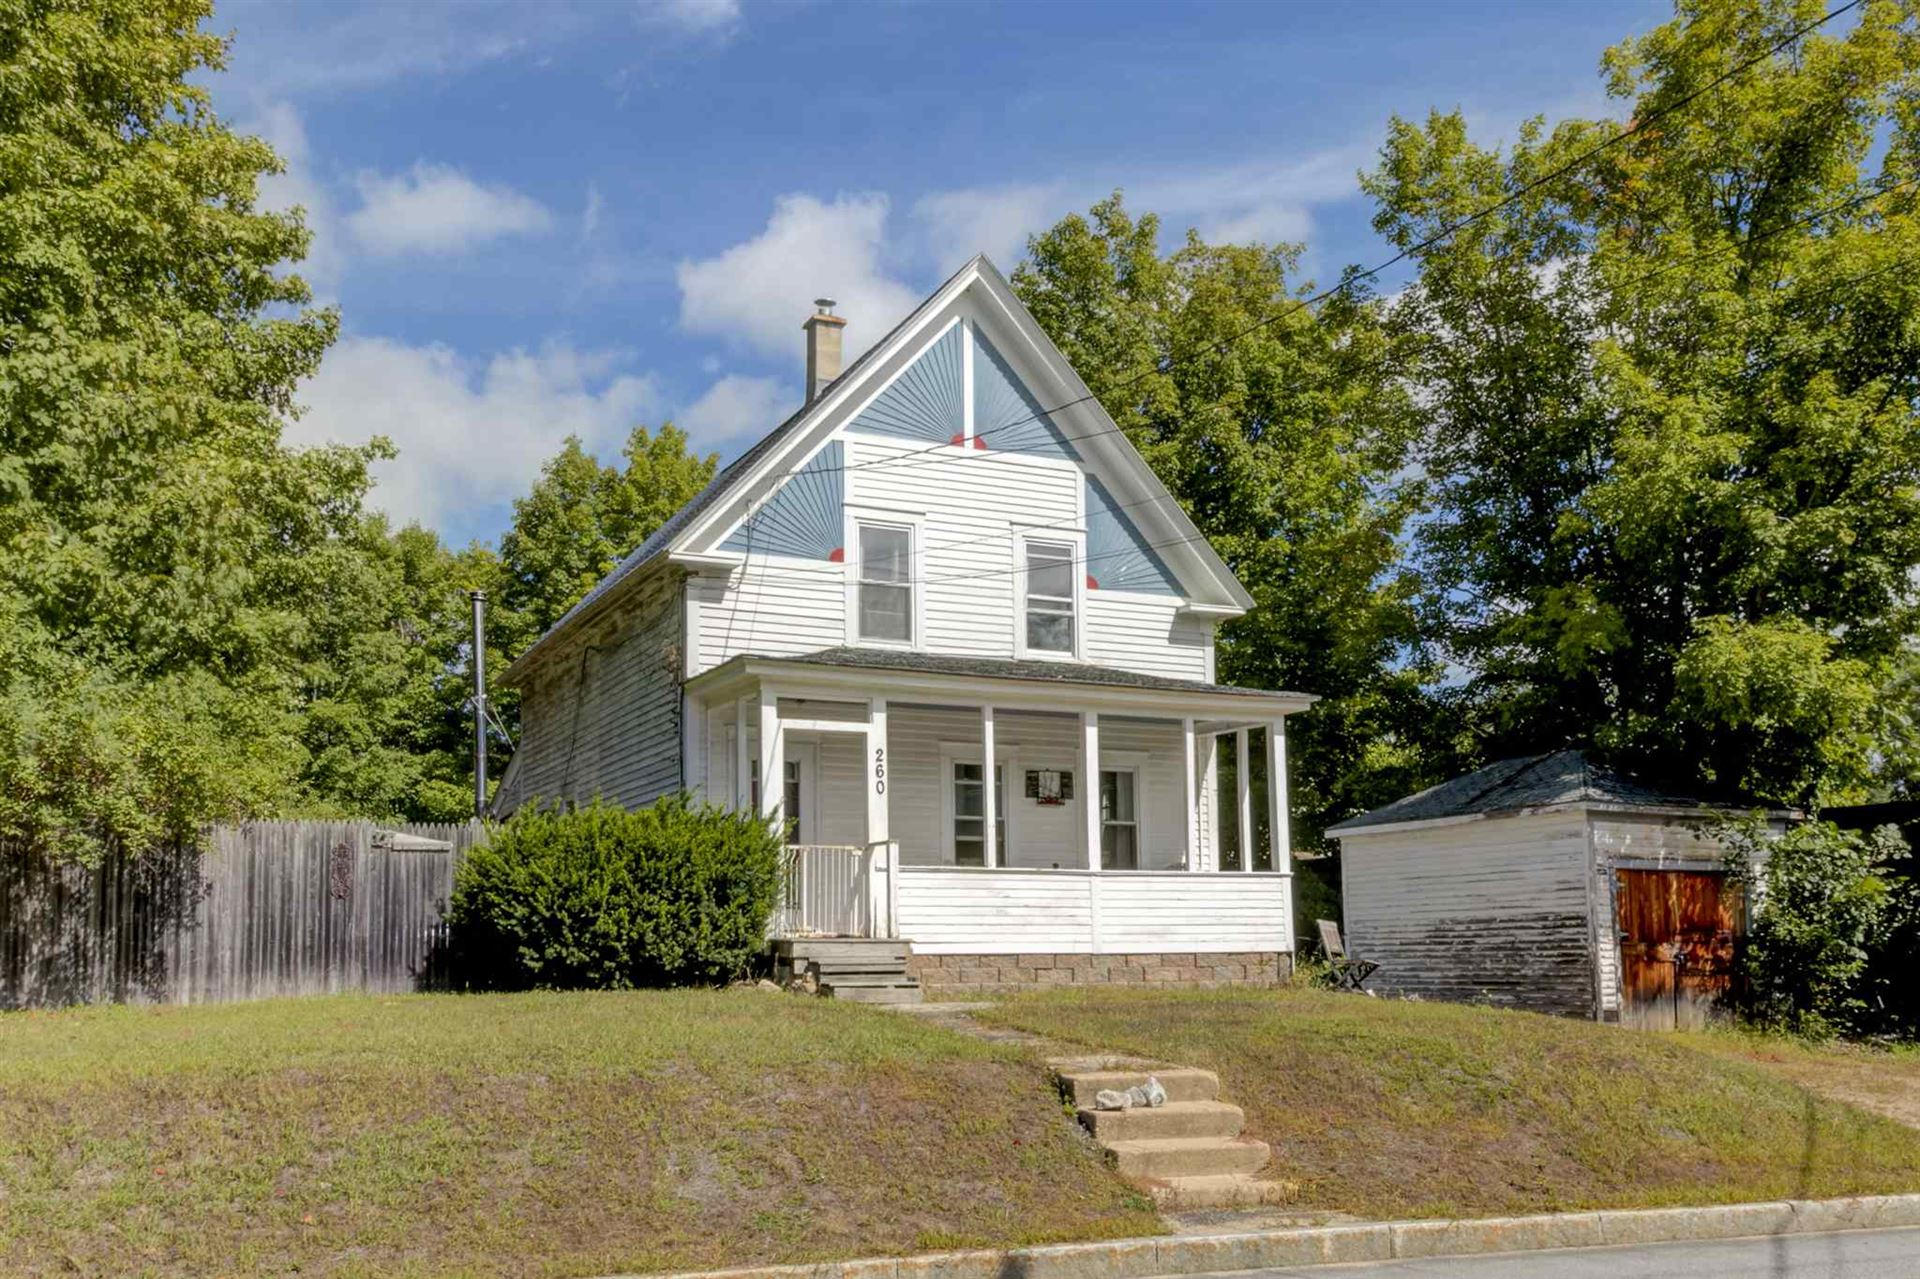 260 West Main Street, Conway, NH 03818 - MLS#: 4827144